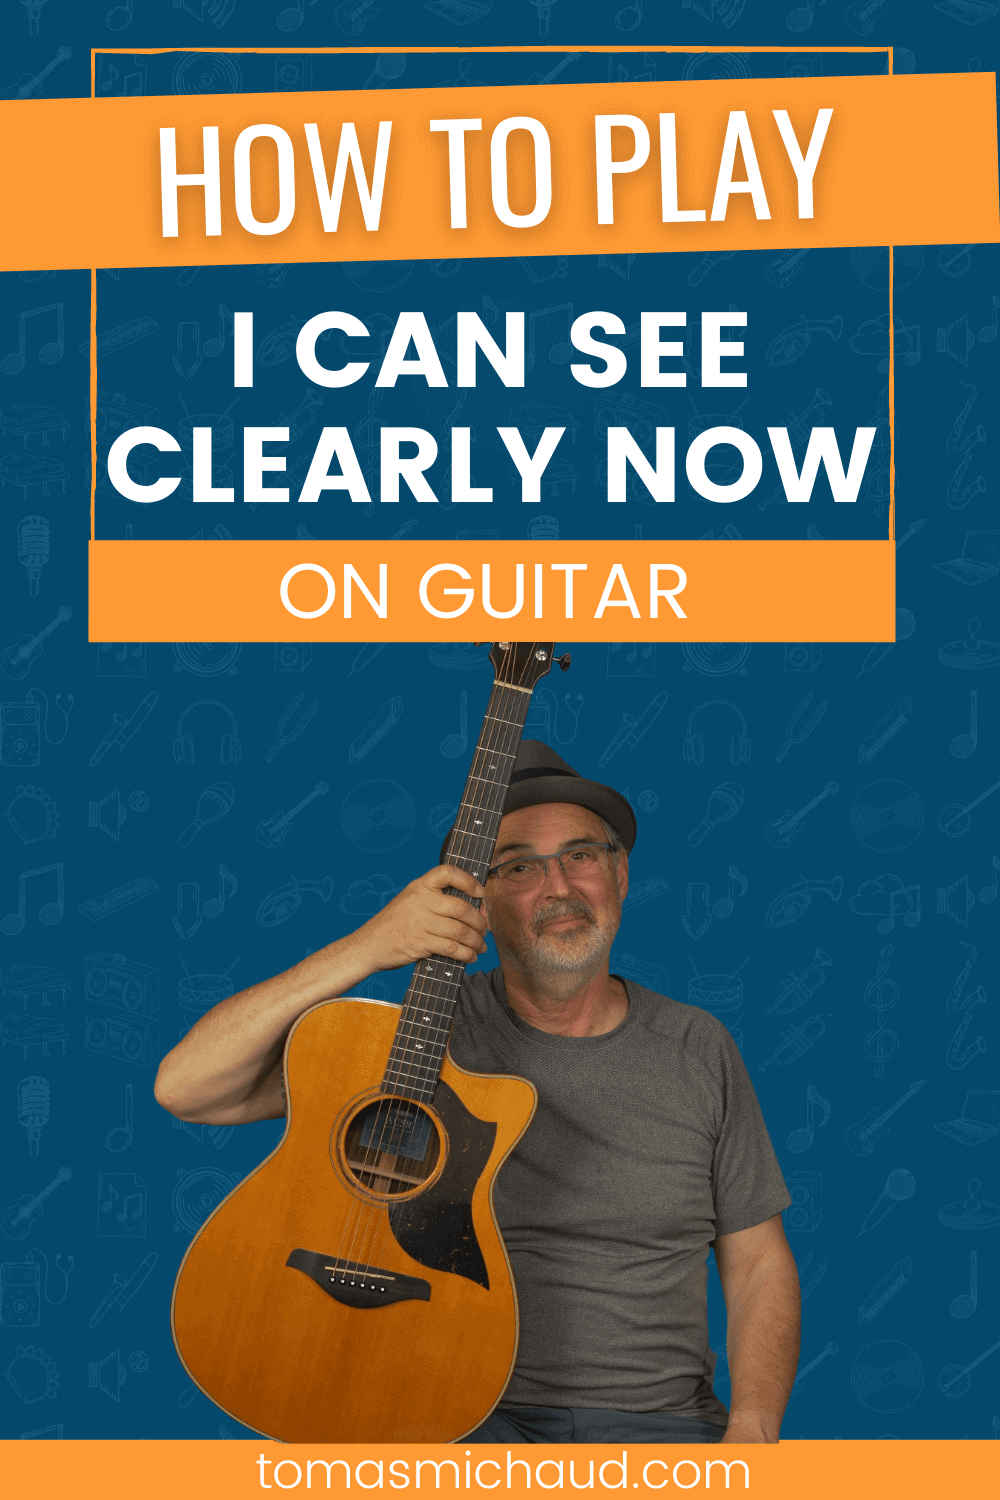 How to Play I Can See Clearly Now On Guitar